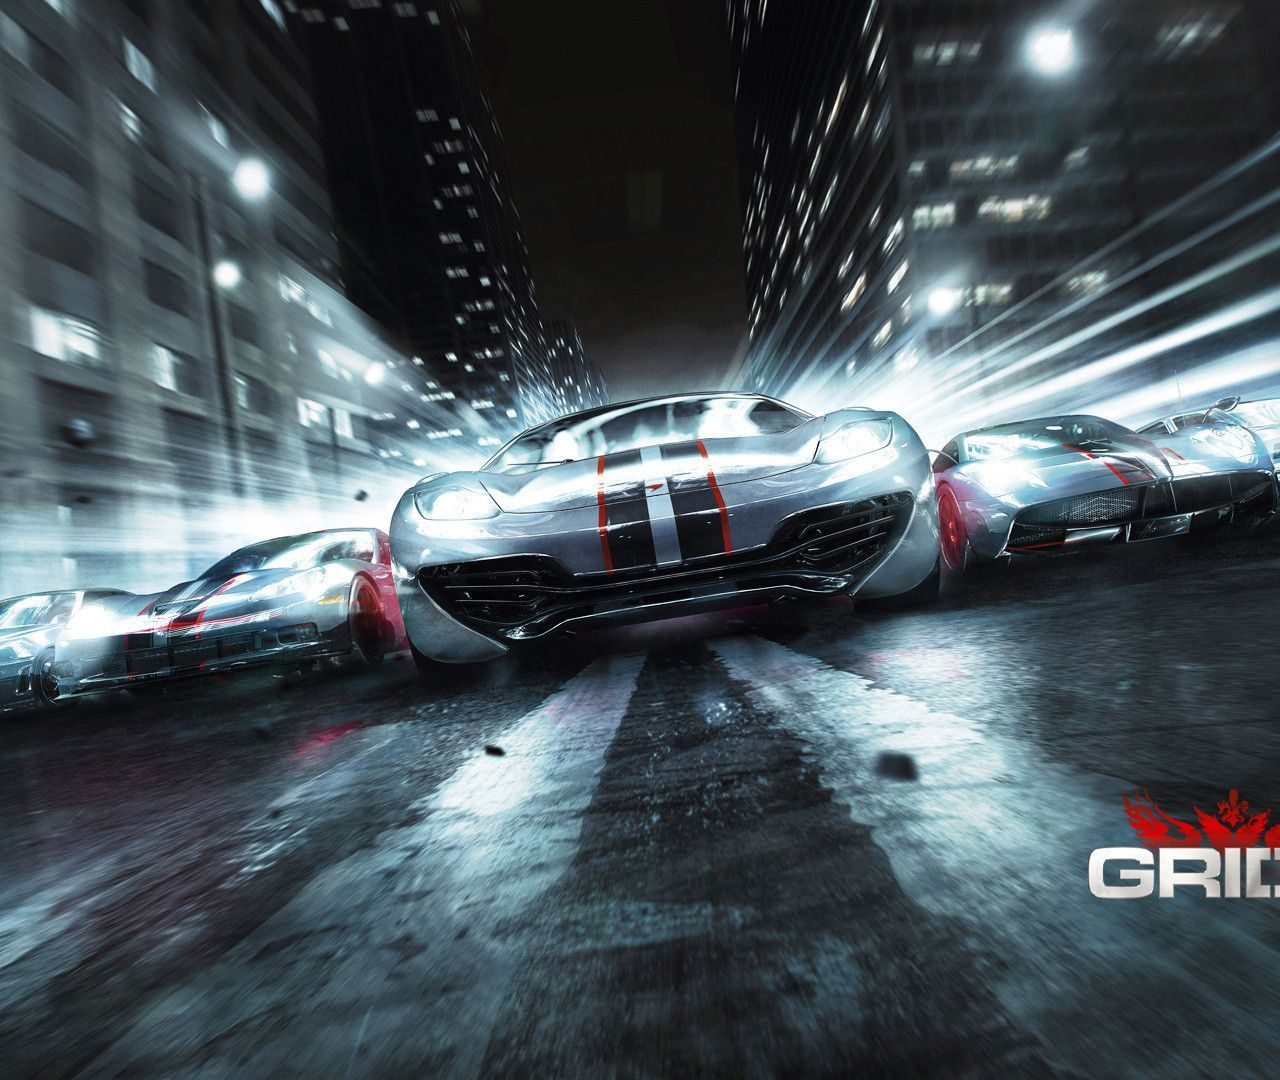 Grid 2 Game Wallpaper High Resolution Pics